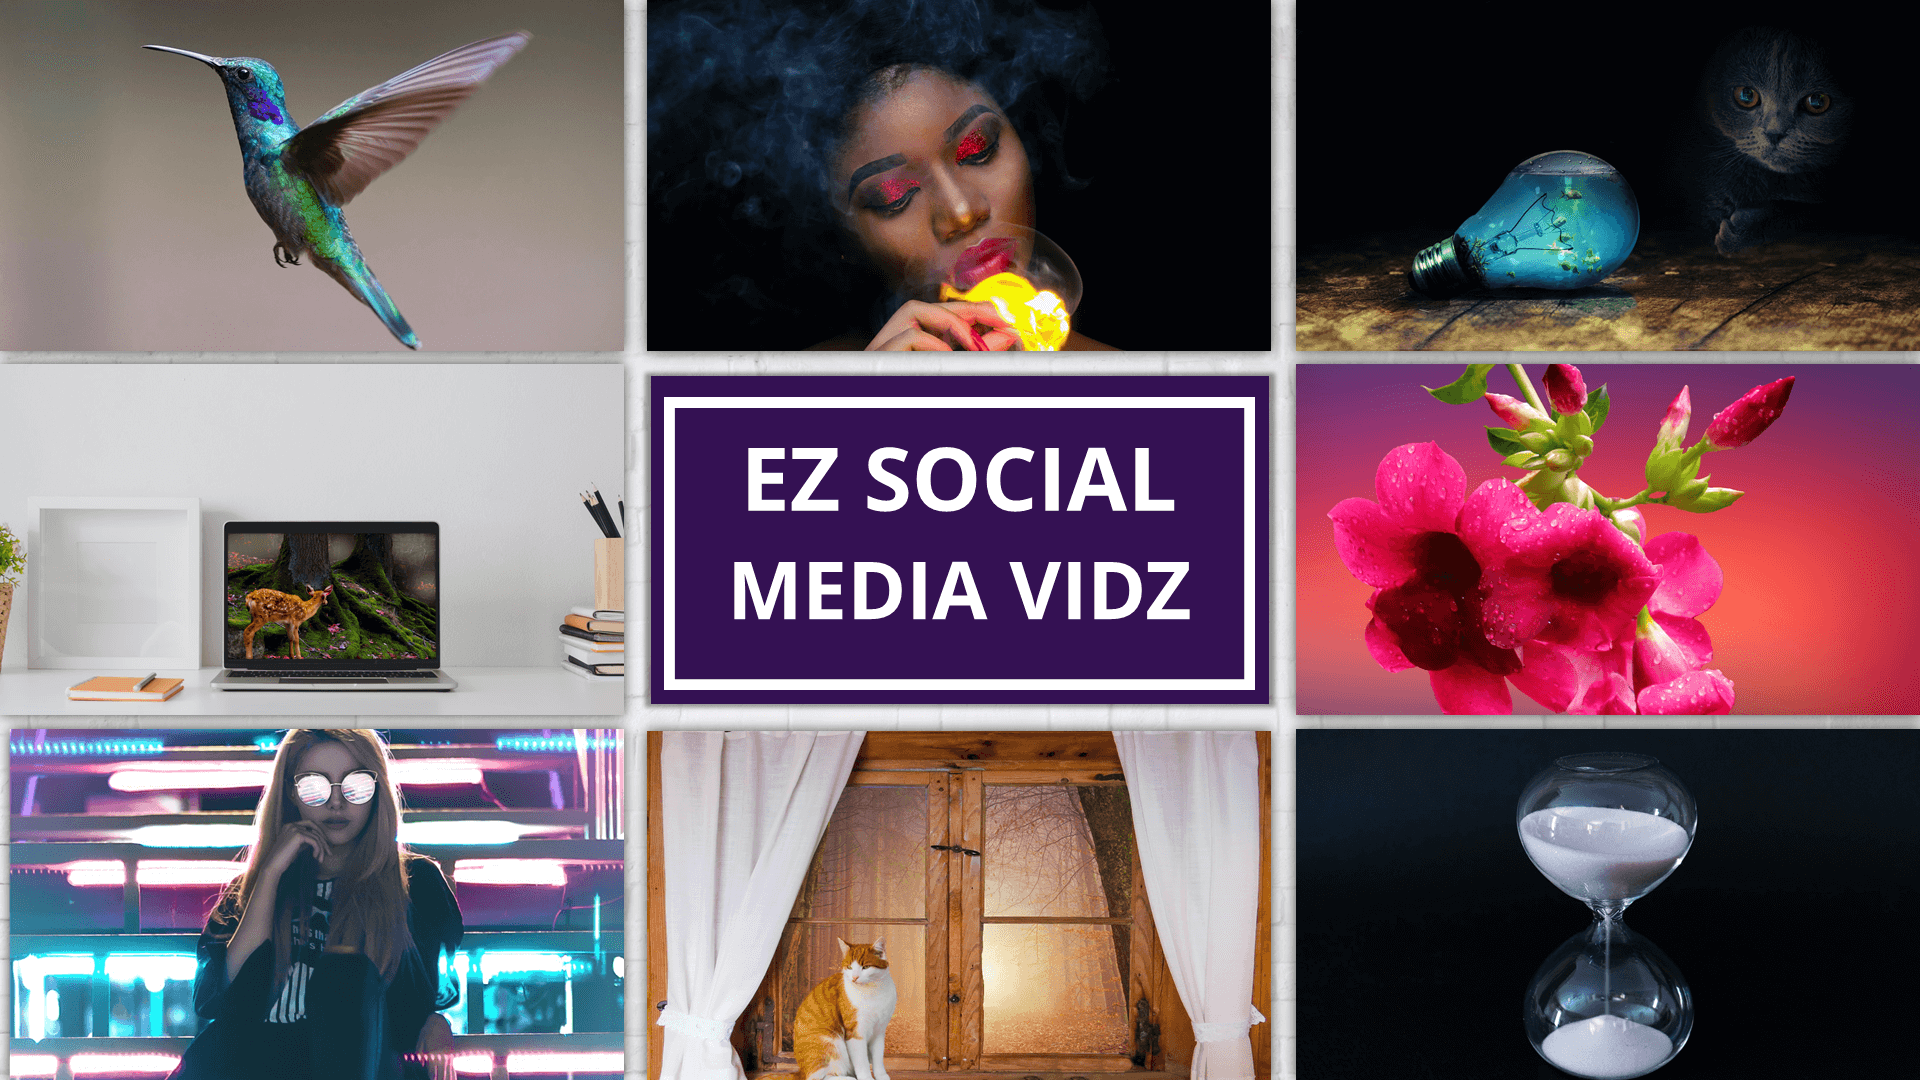 EZ_SocialMedia_Vids_Display7